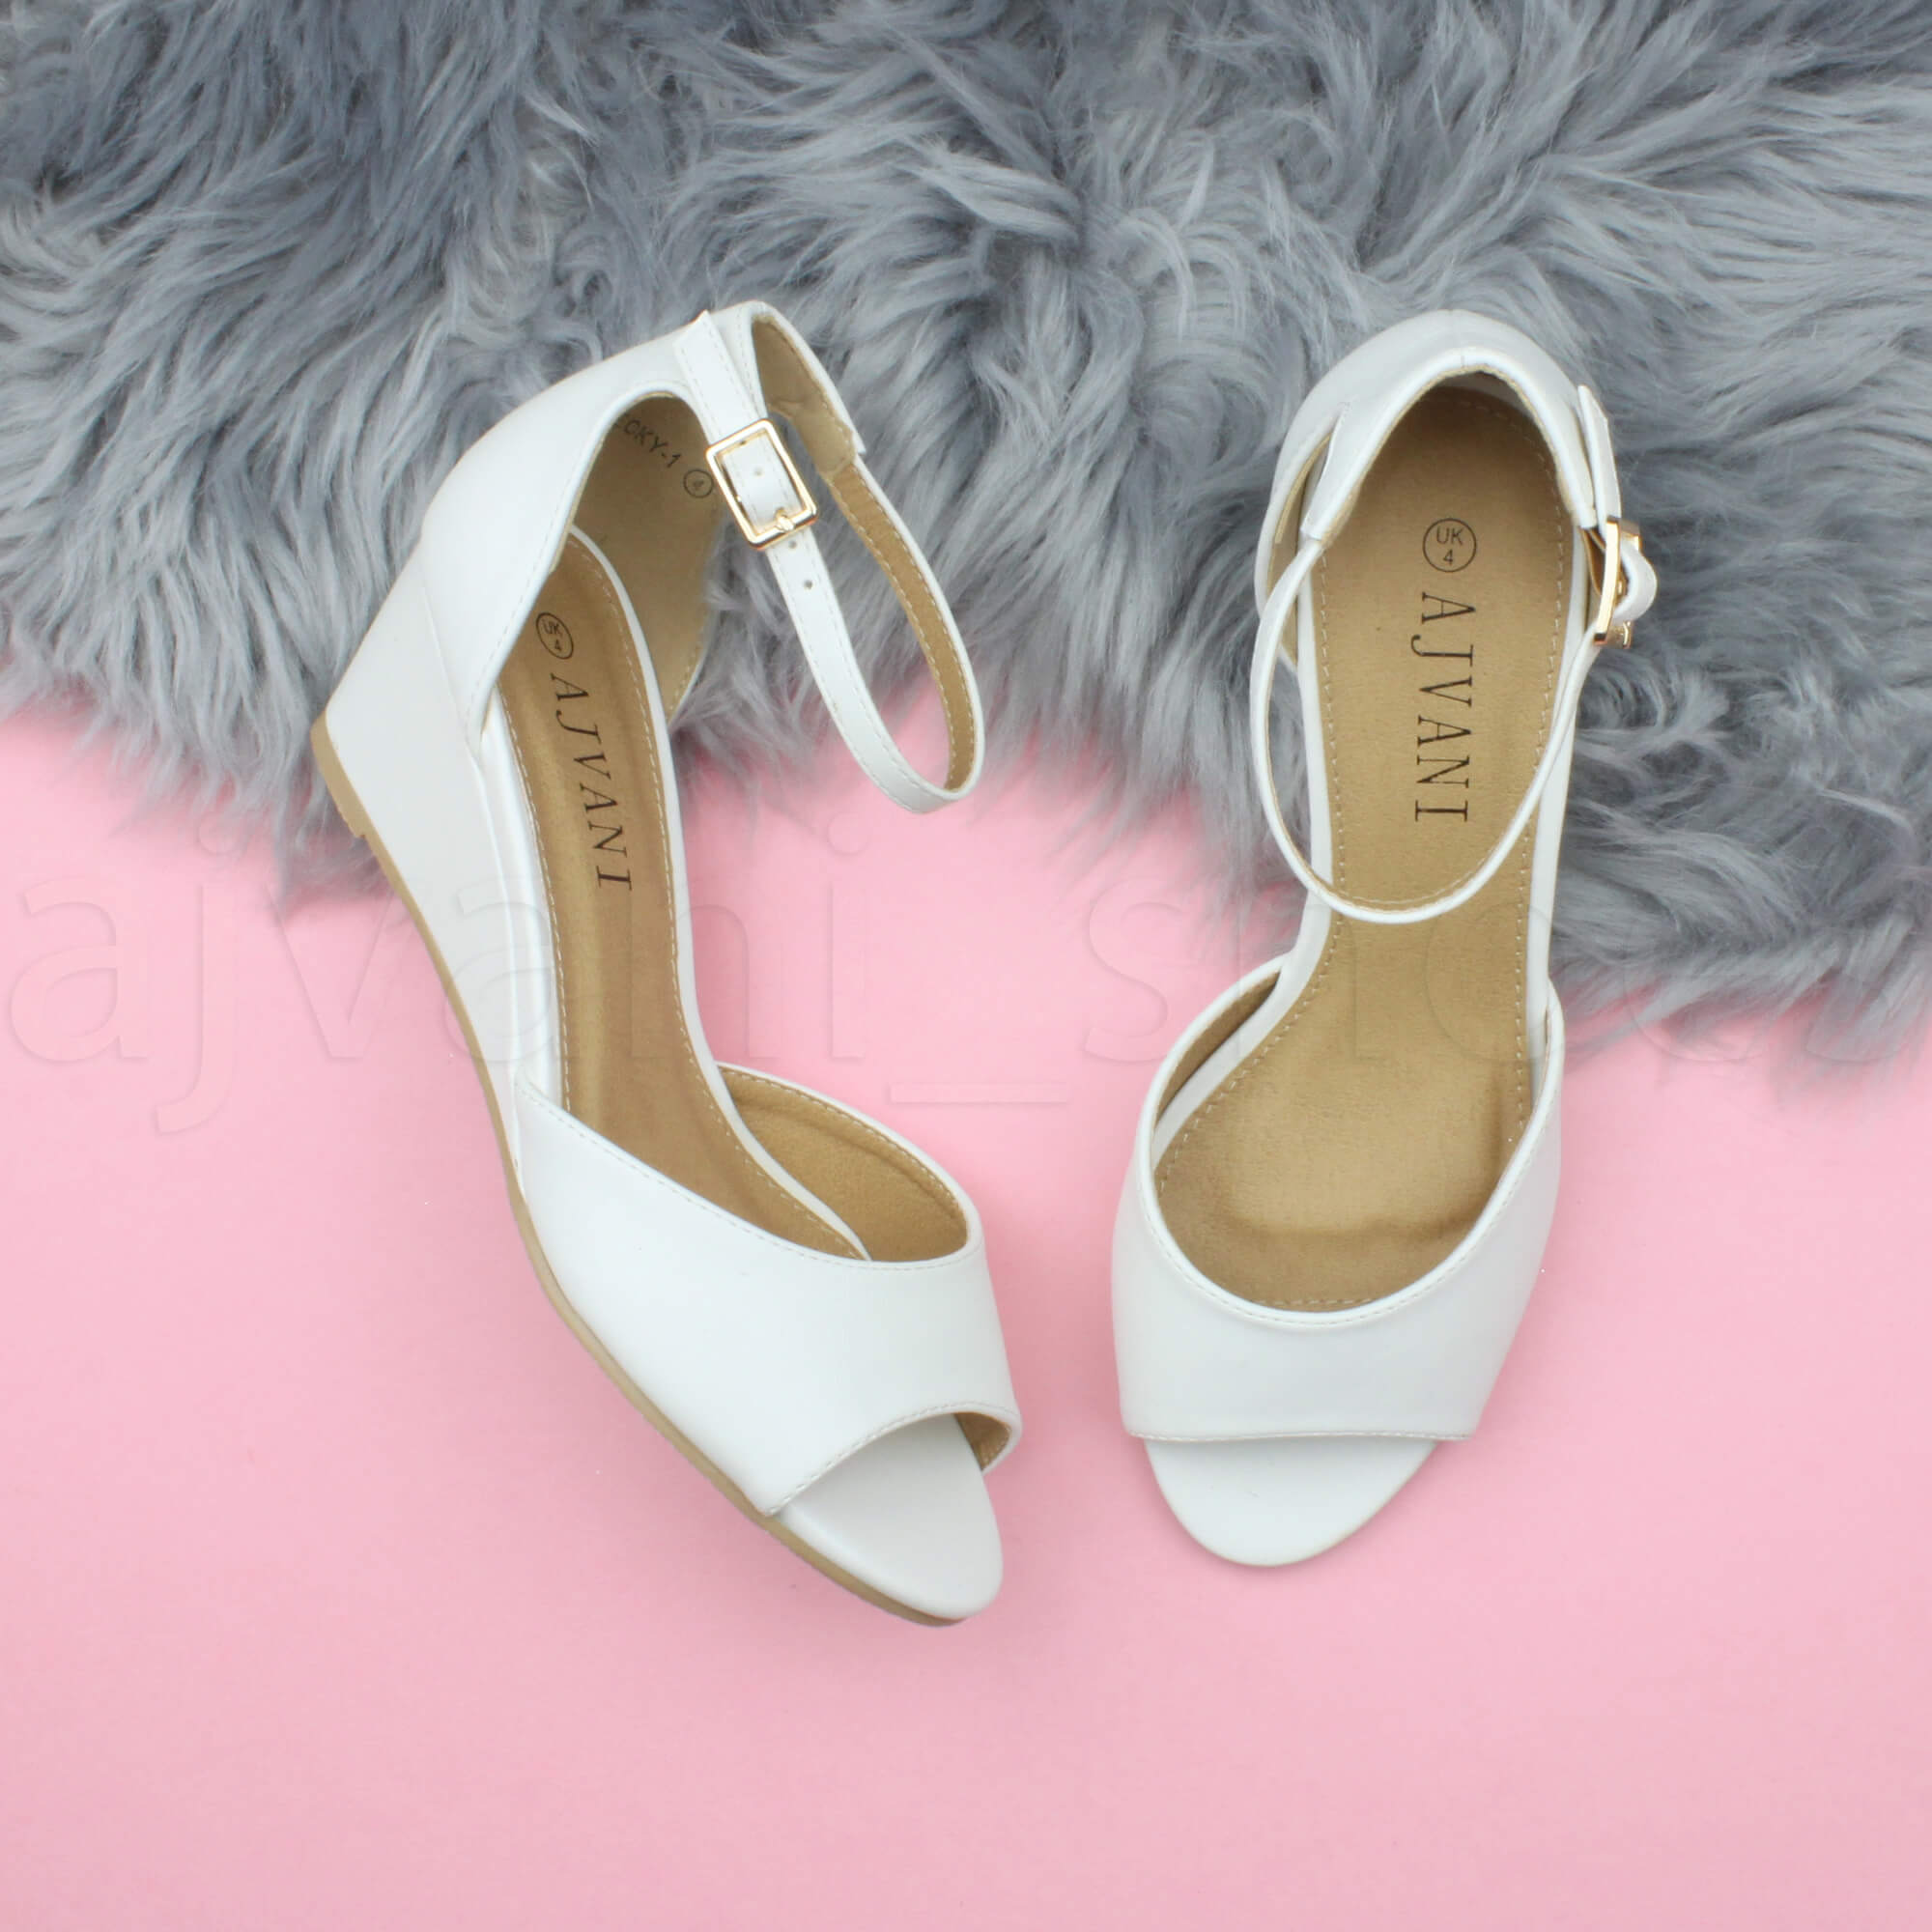 WOMENS-LADIES-LOW-MID-WEDGE-HEEL-ANKLE-STRAP-SMART-CASUAL-EVENING-SANDALS-SIZE thumbnail 165